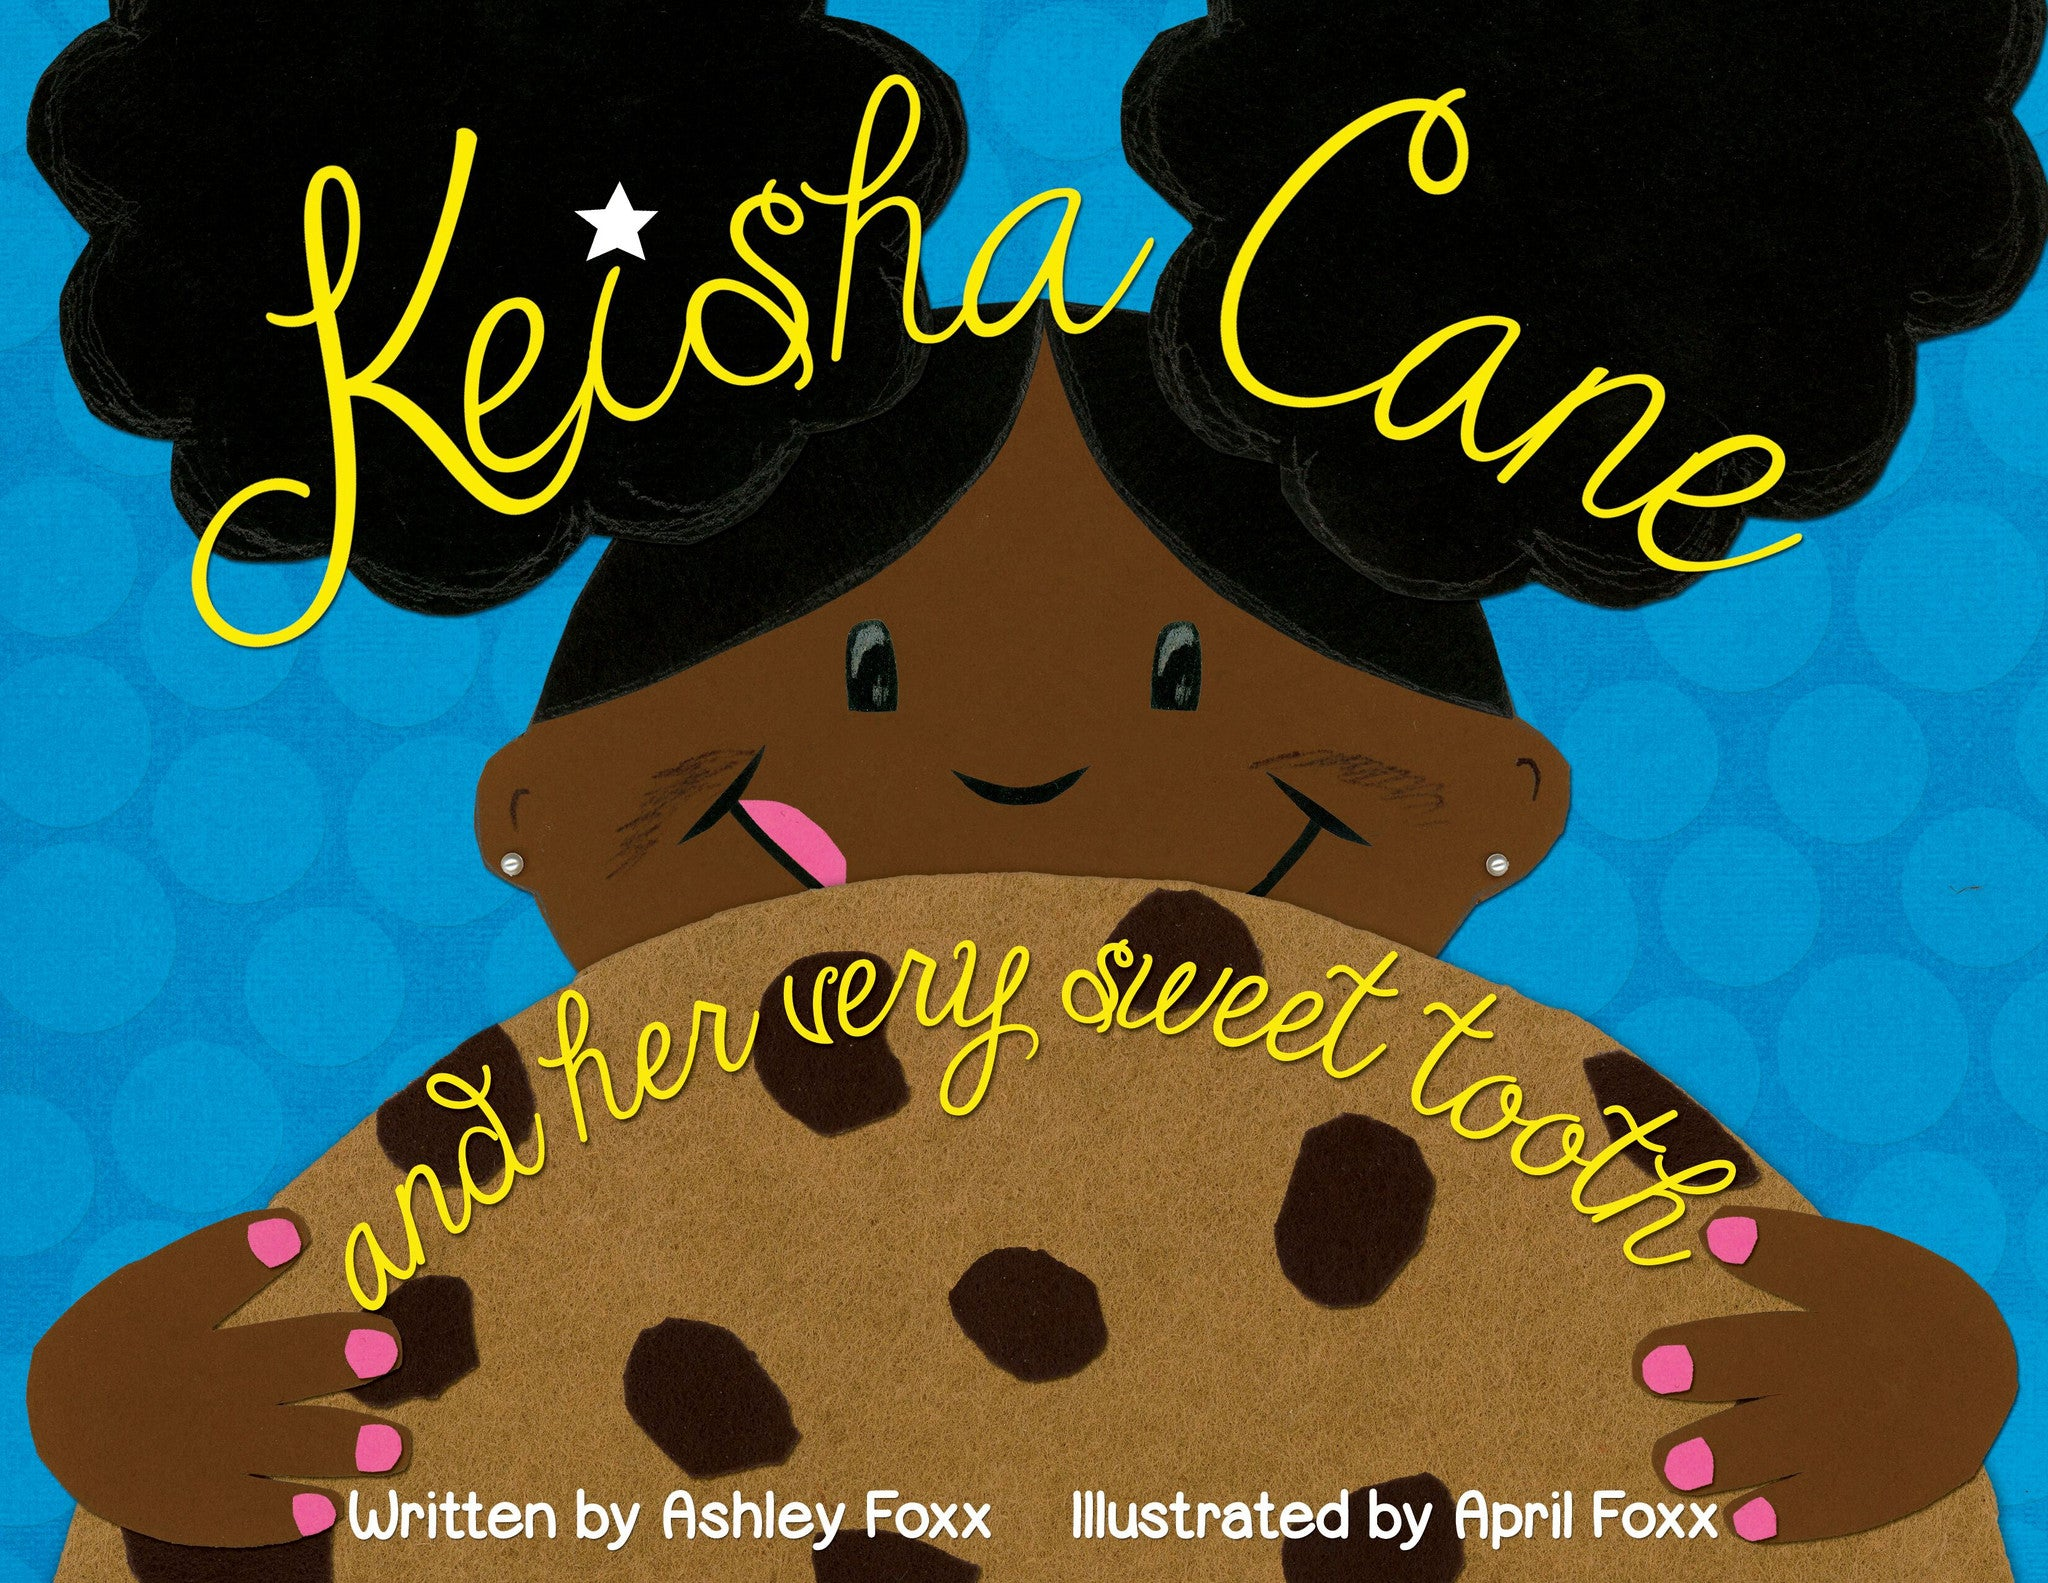 Keisha Cane and Her Very Sweet Tooth - Hardback (Book + Swag)